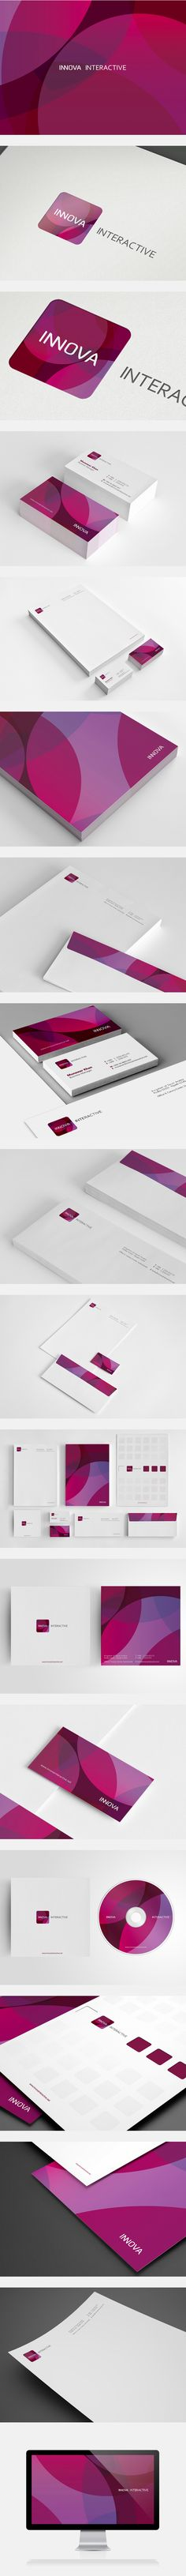 Innova Interactive Identity Design Identity and Branding Corporate Design, Brand Identity Design, Graphic Design Branding, Brochure Design, Logo Design, Identity Branding, Visual Identity, Web Design, Id Card Design